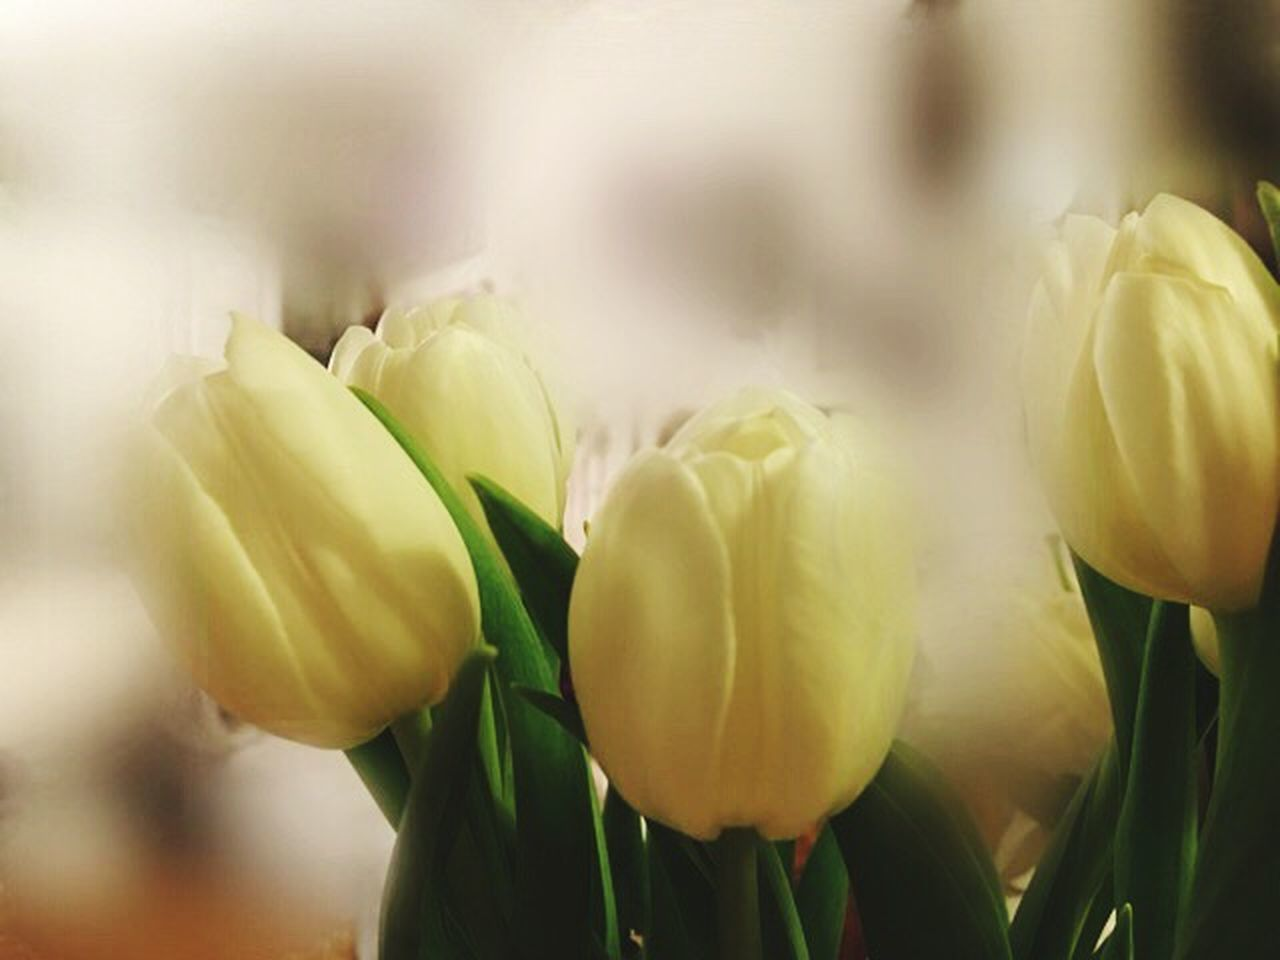 Spring Will Come Flower Freshness Fragility Beauty In Nature Nature Petal Close-up Flower Head Growth Plant No People Blooming Day Outdoors Tulip Tulpe Weiss Weiße Blumen🌱 Indoors  Beauty In Nature Blumen Flowers EyeEmFlower Eyeemflowerlover